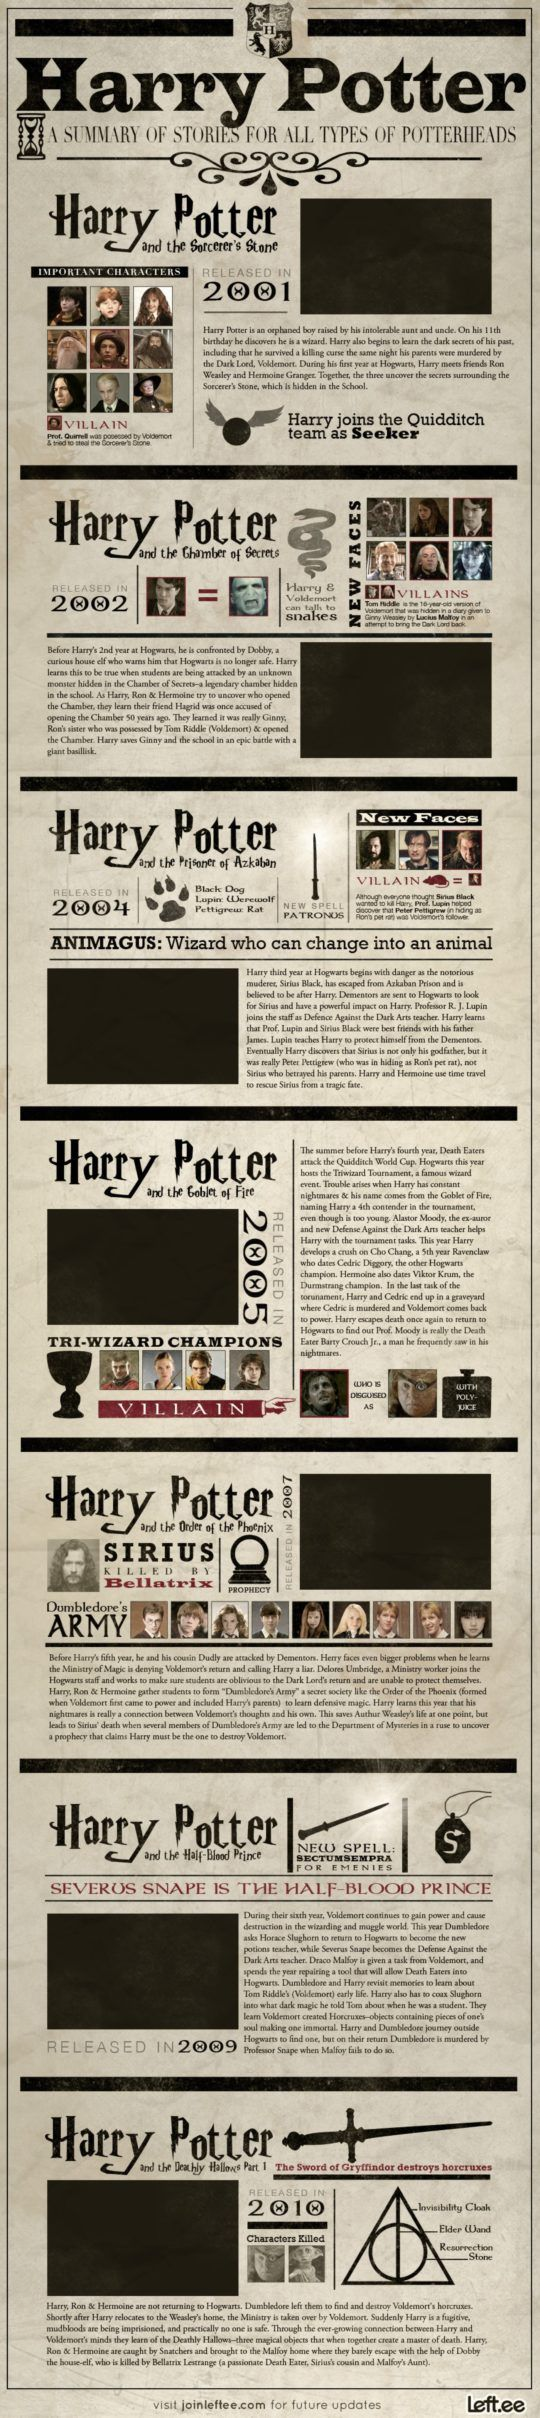 #Infographic A visual summary of #HarryPotter stories